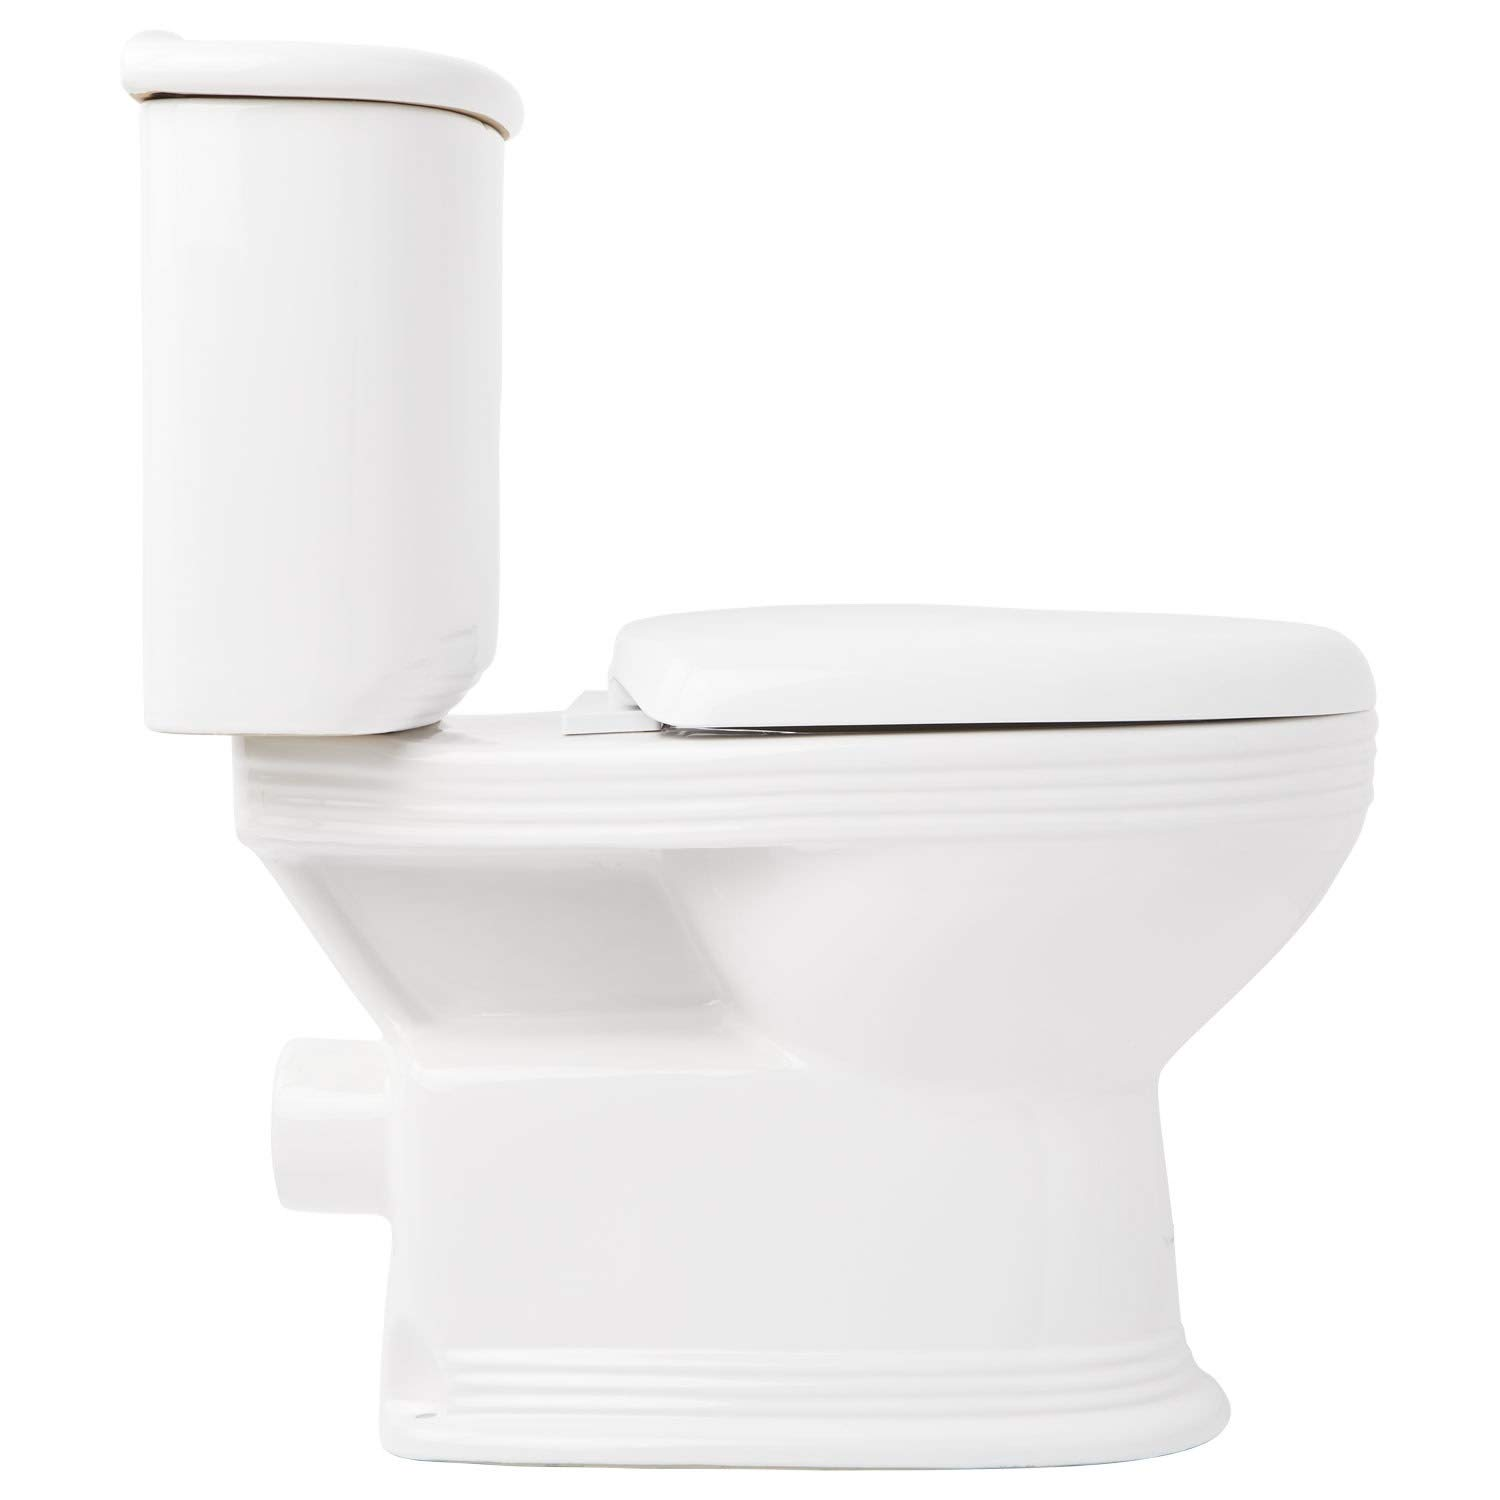 Signature Hardware 398506 Ebler 1.6/0.8 GPF Two Piece Elongated Toilet with Rear Outlet - Seat Included by Signature Hardware